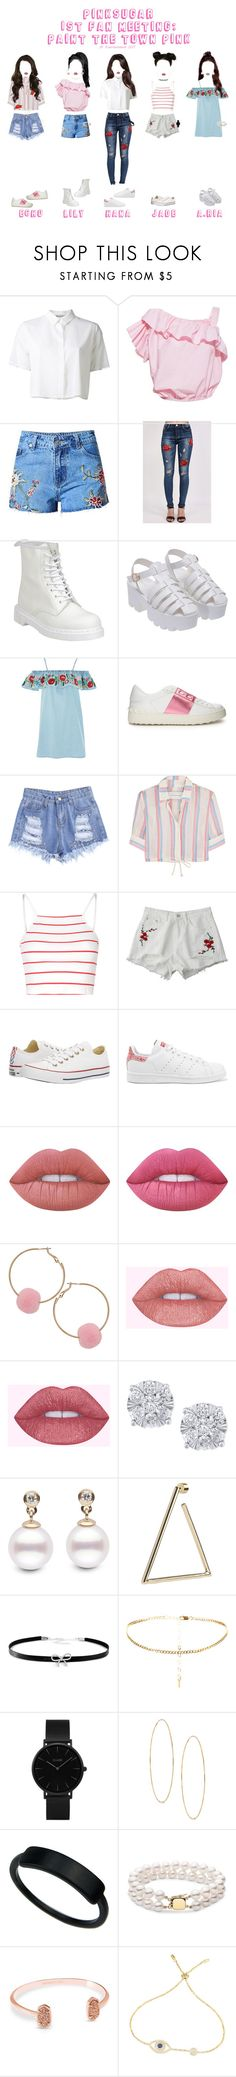 """PinKSugar 1st Fan Meeting: Paint The Town Pink"" by official-pinksugar ❤ liked on Polyvore featuring T By Alexander Wang, Pilot, Dr. Martens, Topshop, Valentino, Solid & Striped, Glamorous, Converse, adidas Originals and Lime Crime"